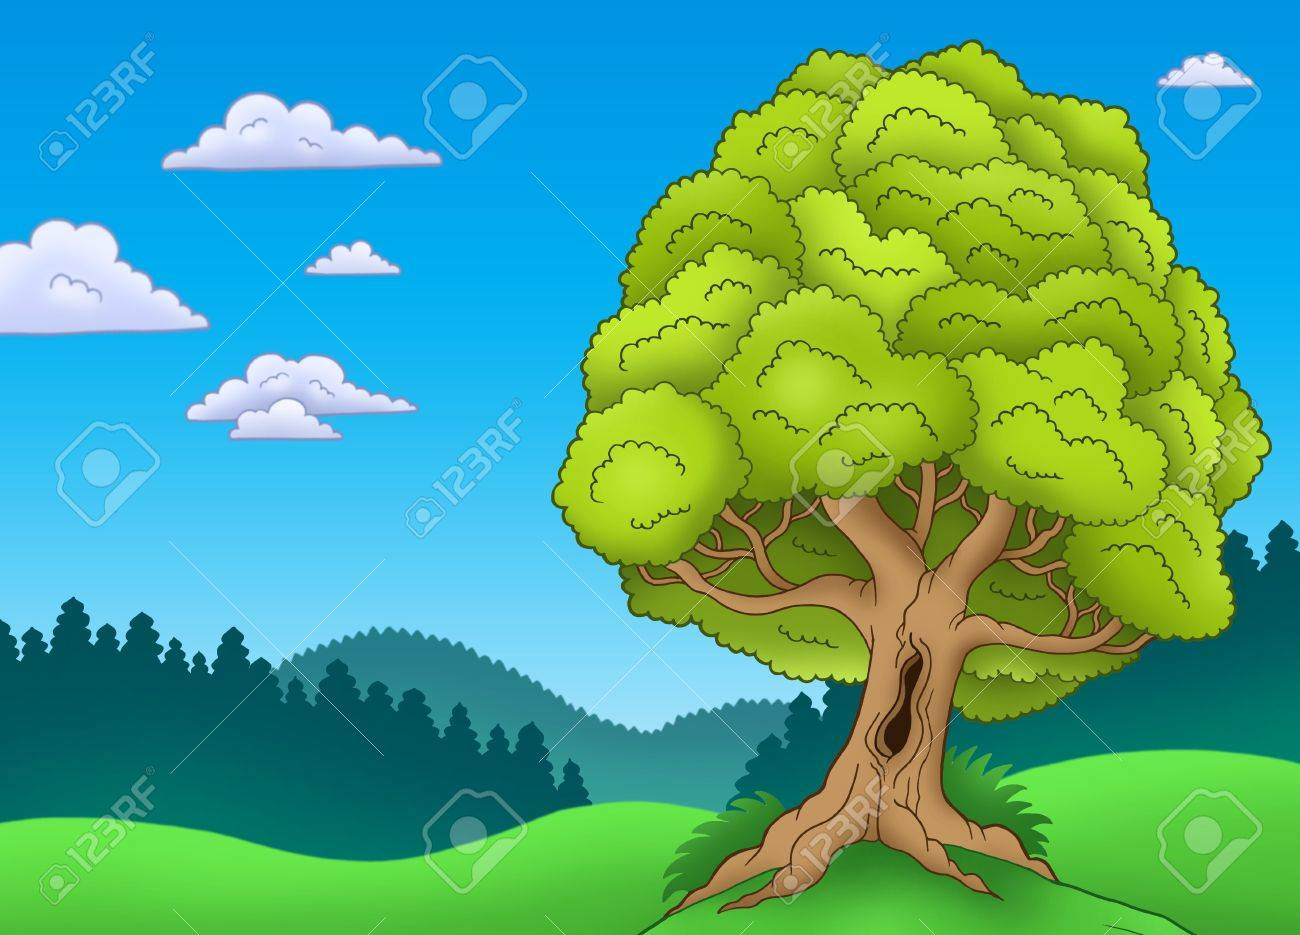 Big leafy tree in landscape - color illustration. Stock Photo - 7150756